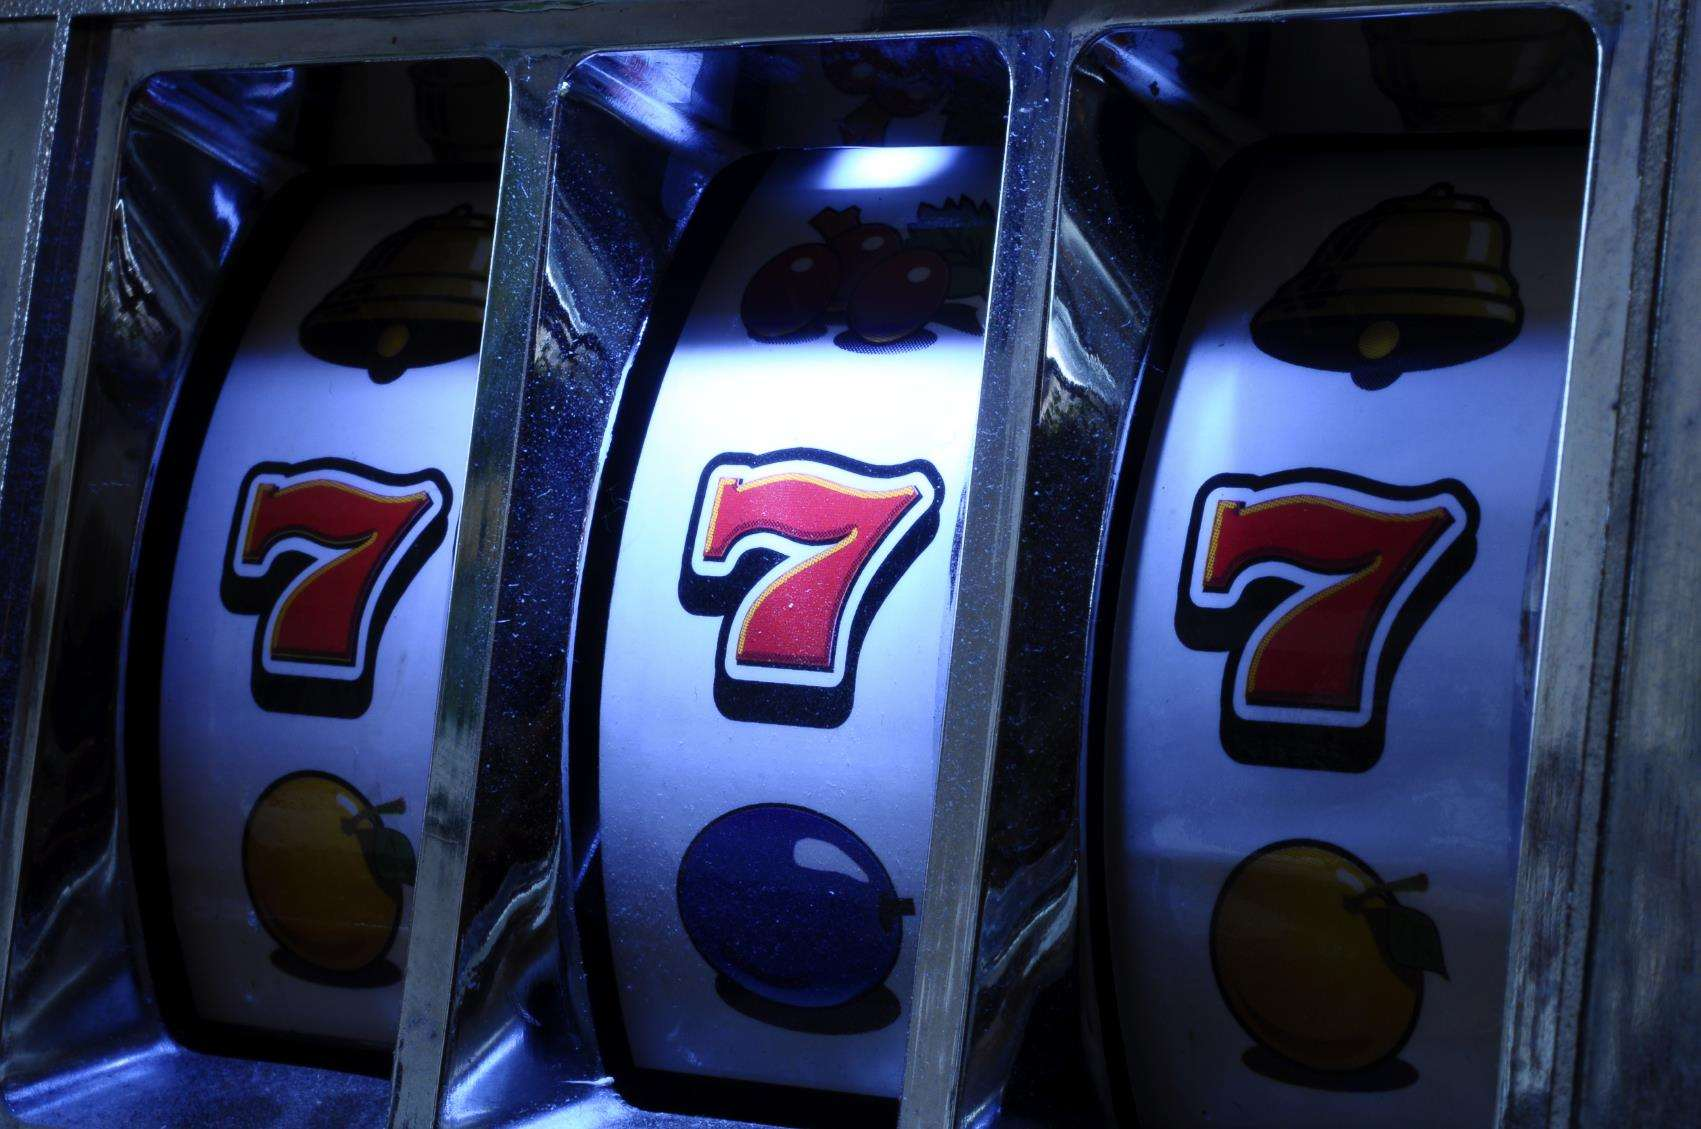 Fixed-odds betting terminals will have their maximum stakes limited to £2